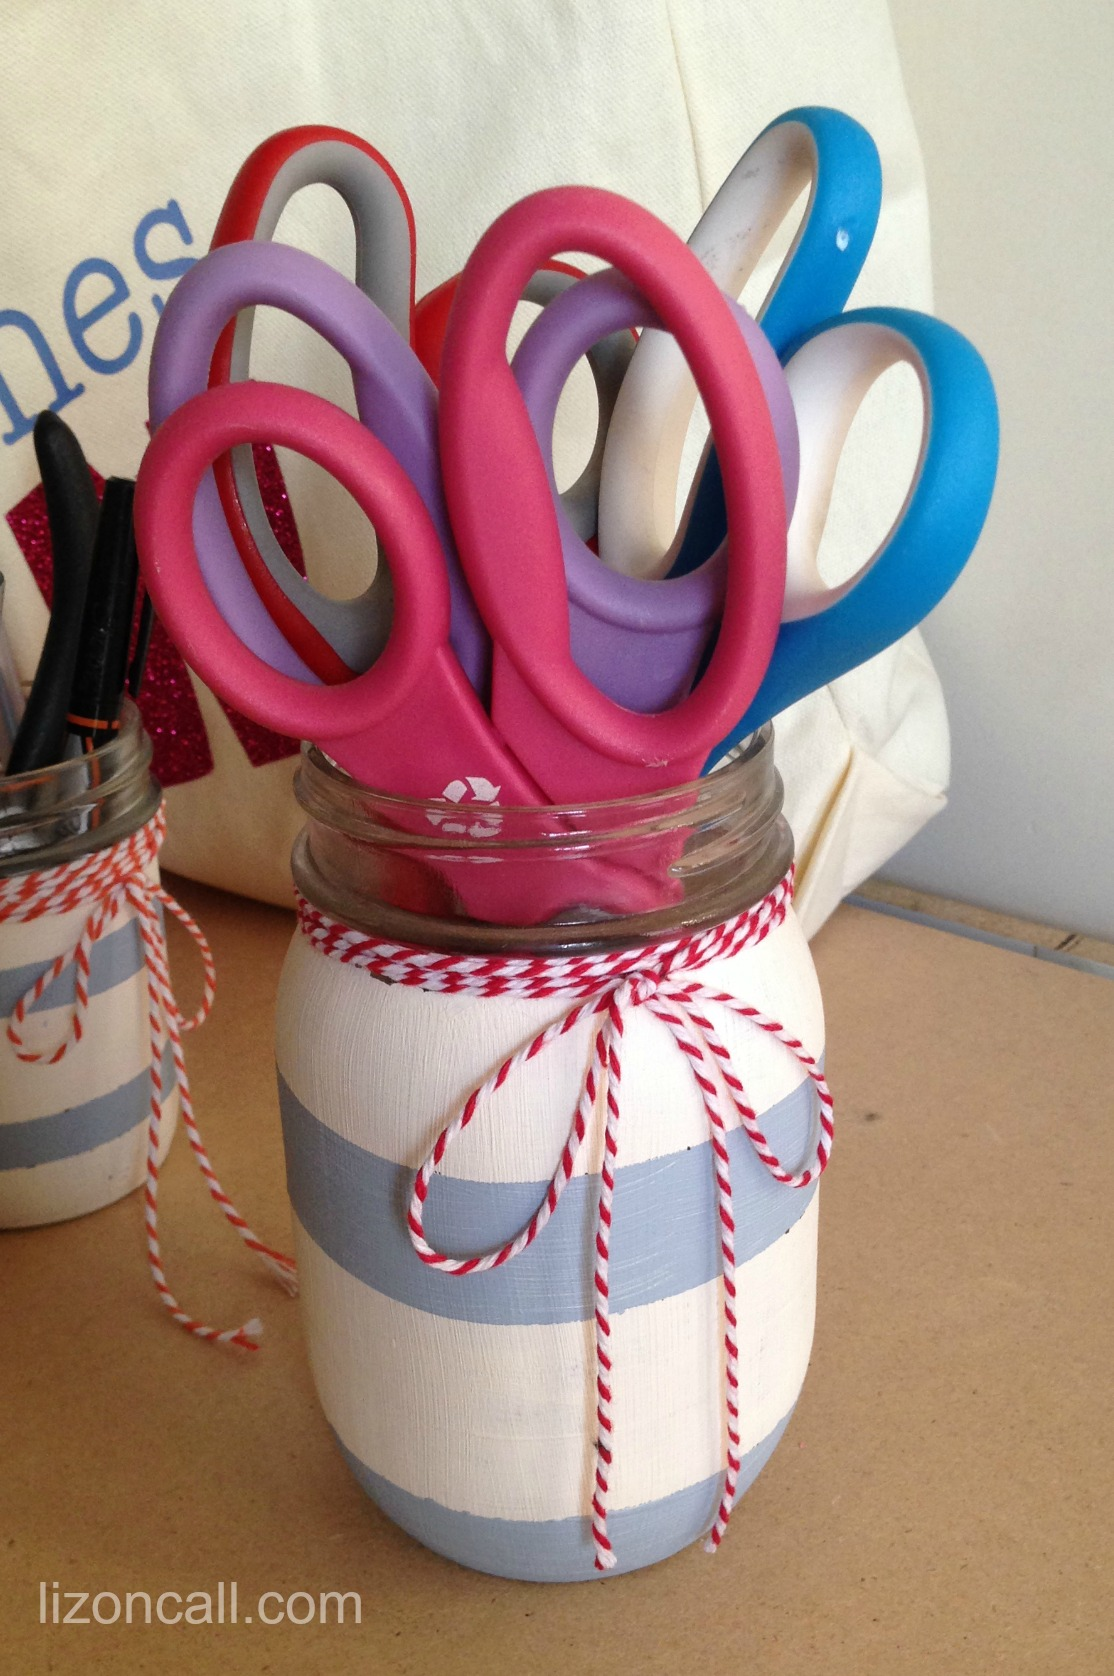 crafters and gift givers can never have too many scissors